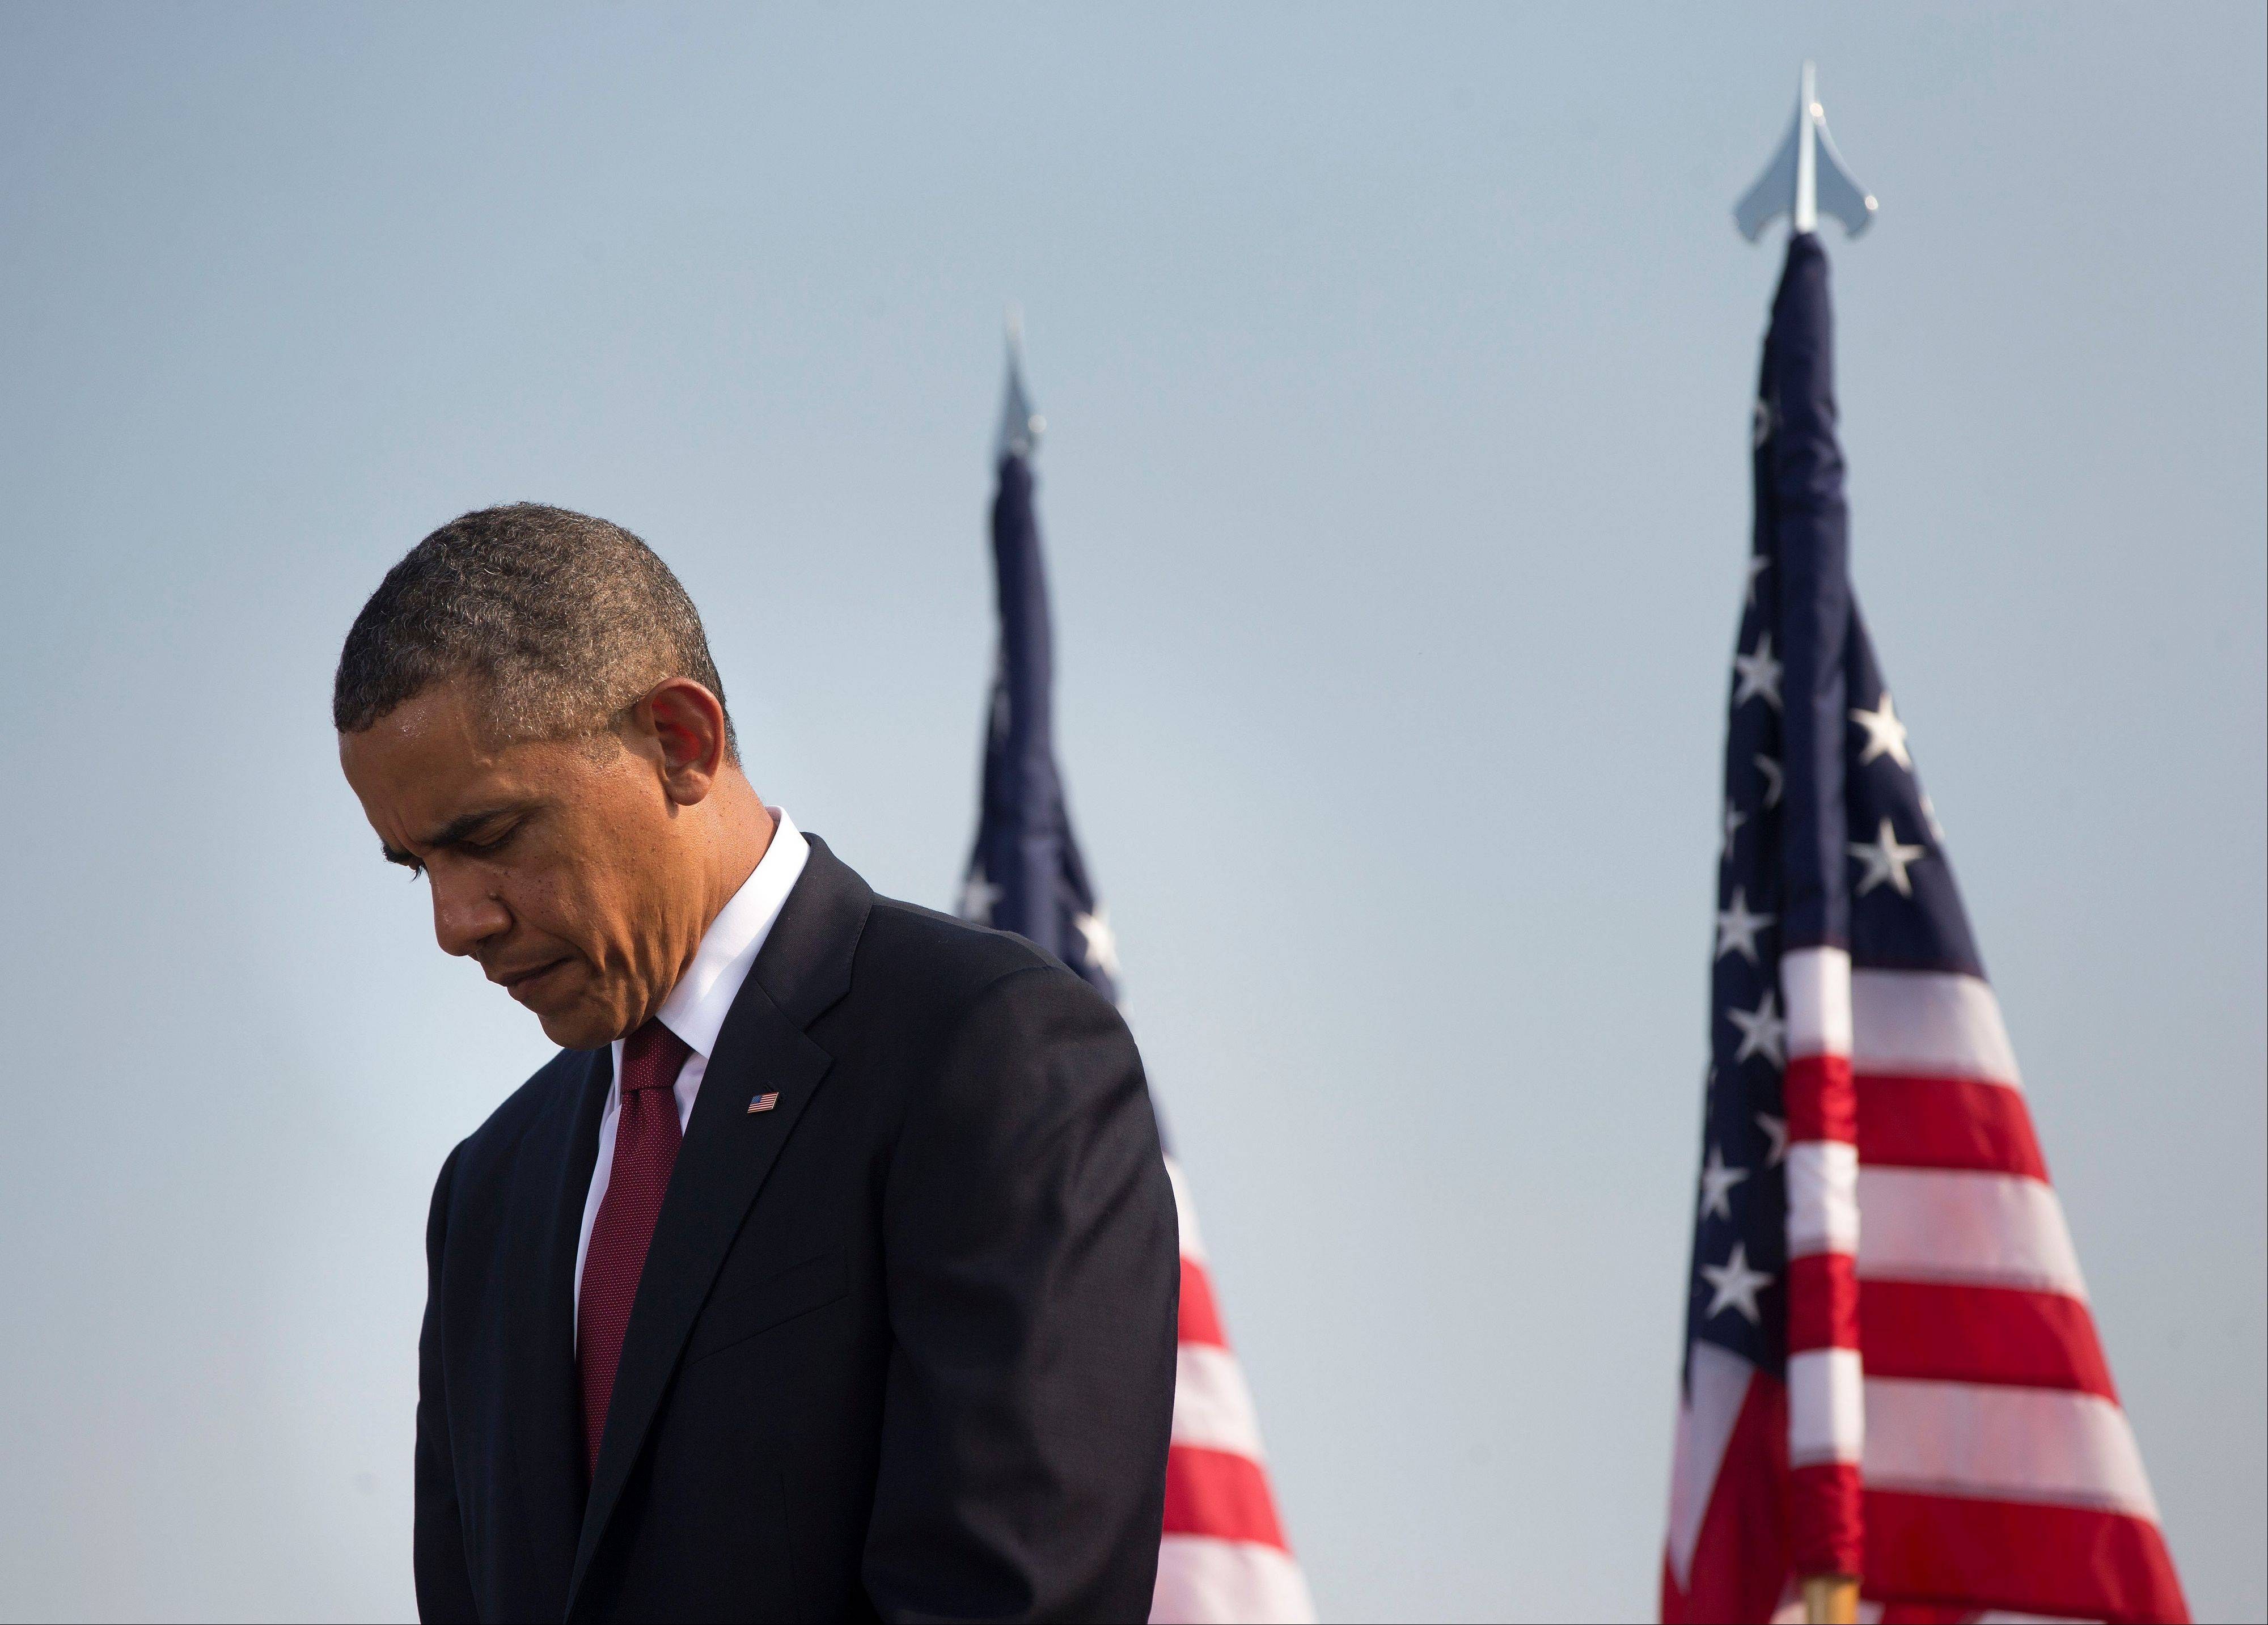 President Barack Obama lowers his head during a moment of silence at the Pentagon Wednesday, during a ceremony to mark the 12th anniversary of the 9/11 attacks.